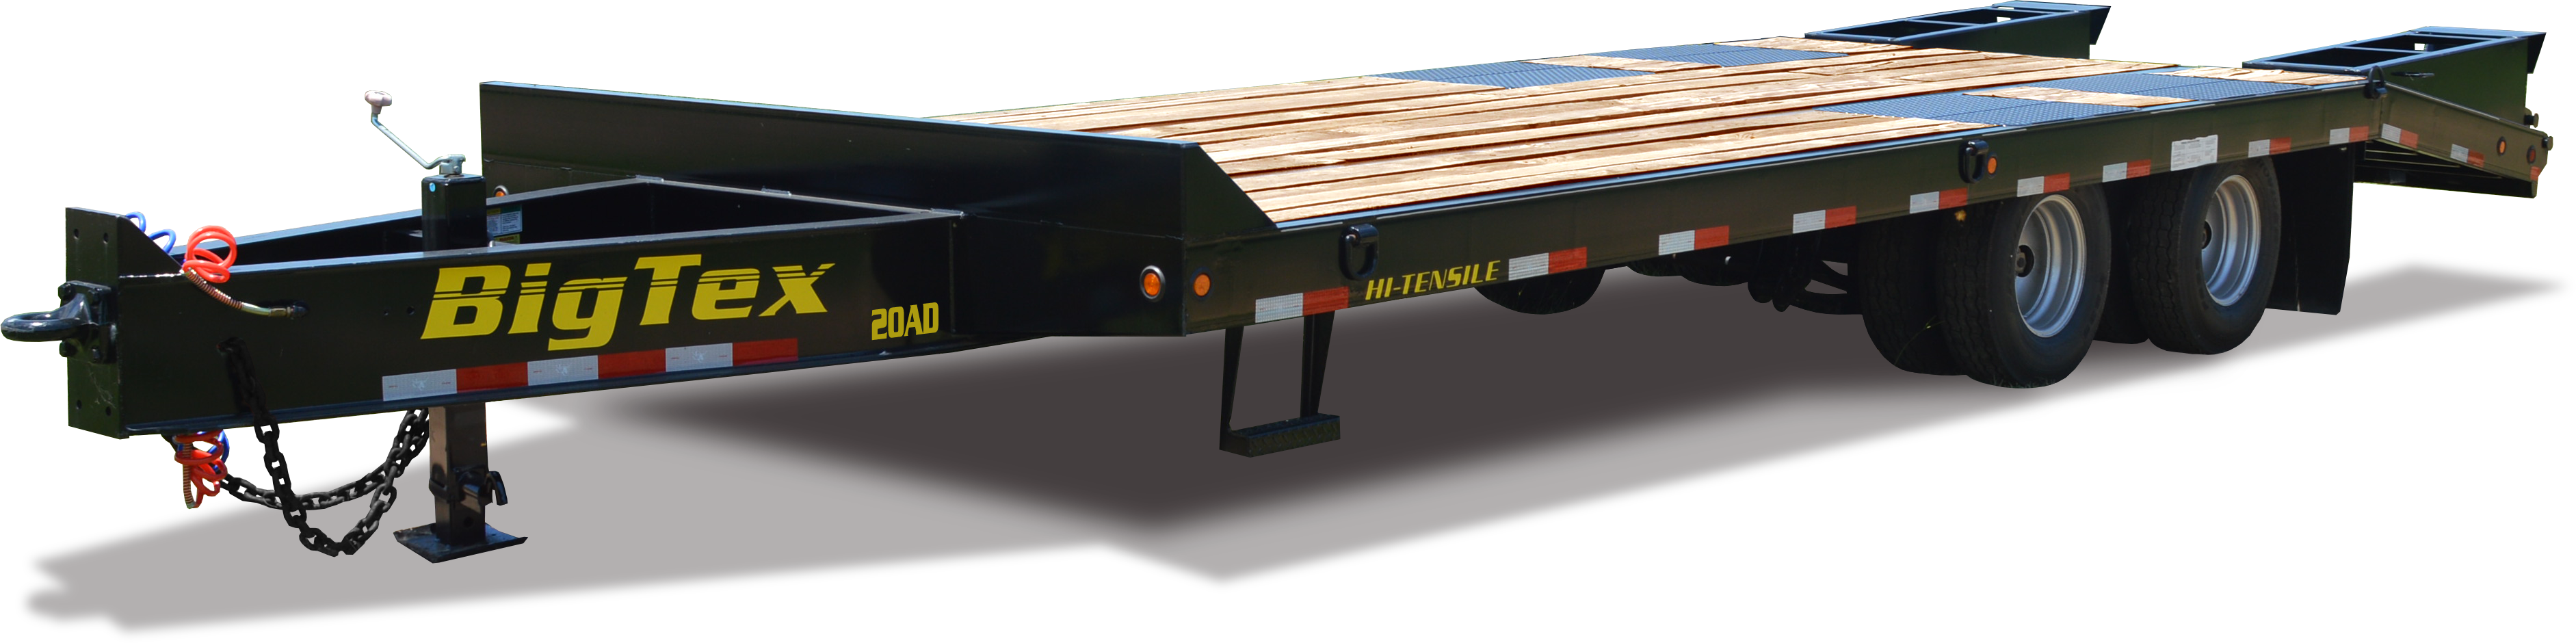 Big Tex Trailers 20AD-24+5